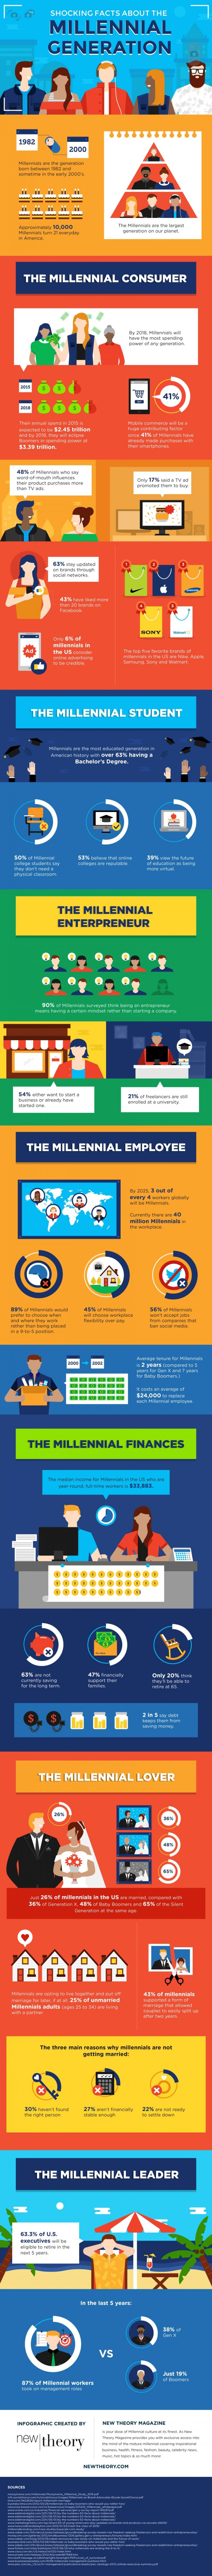 Meet the Millennials: Things You Didn't Know - Infographic